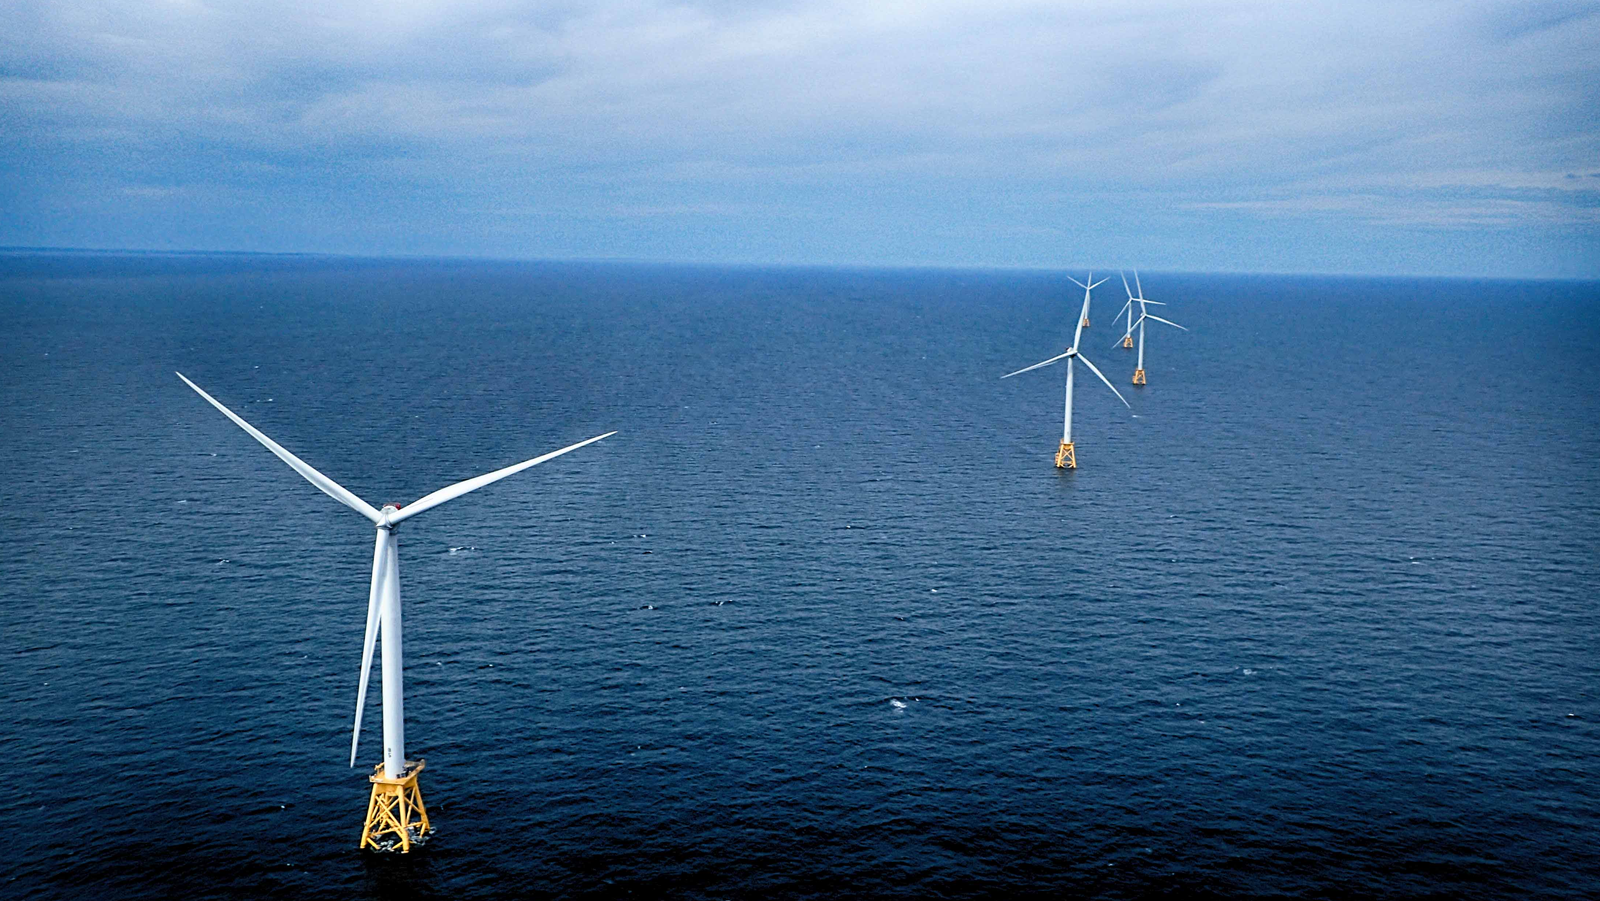 <h4>Go Big On Offshore Wind</h4> <h5>Goal: Convince six states to harness the wind that blows off their shores.</h5> <em>Block Island Wind Farm, R.I. / Ionna22</em>